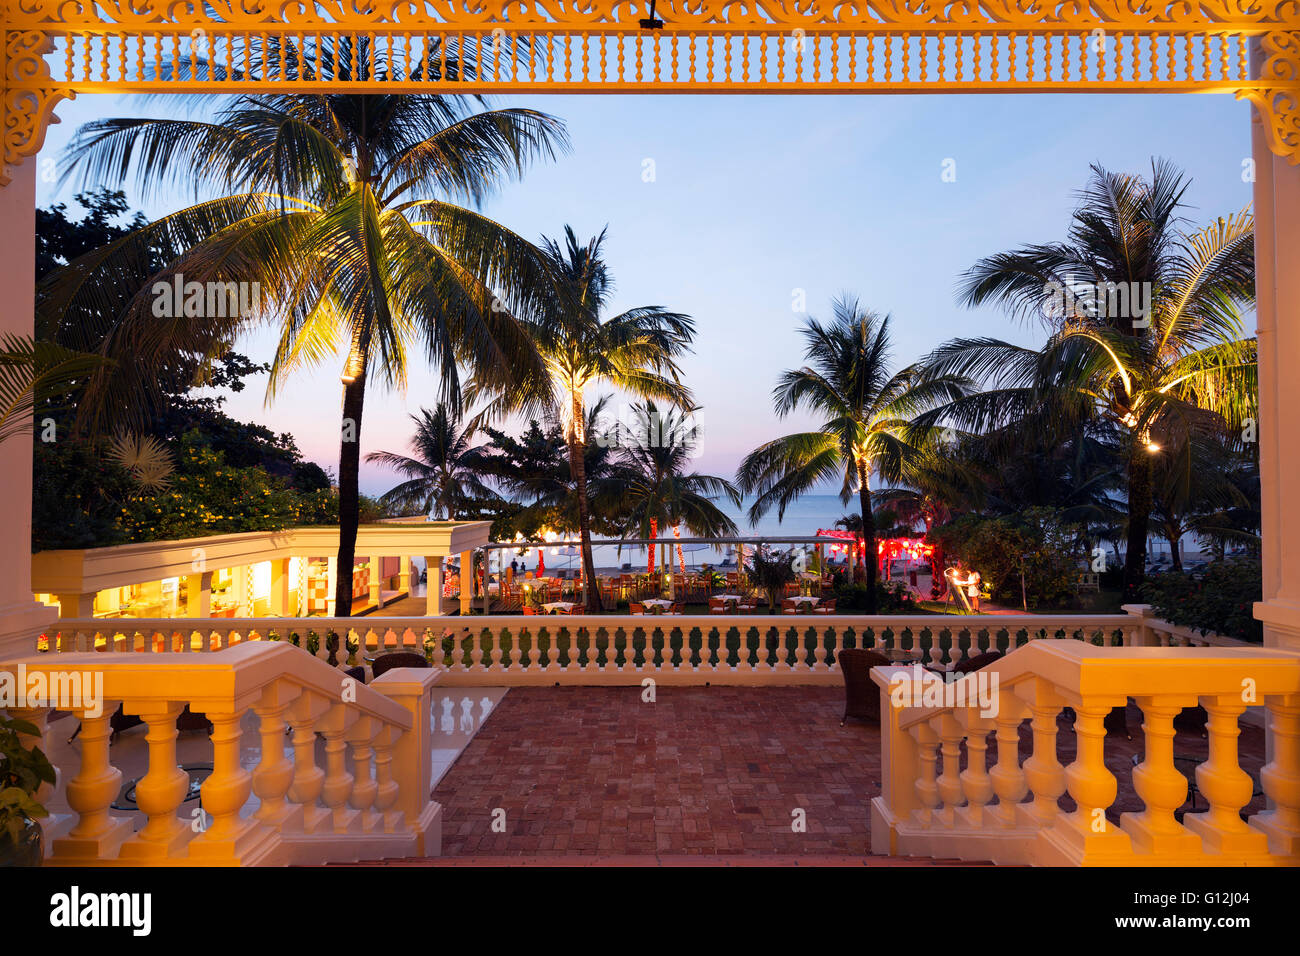 South East Asia, Vietnam, Phu Quoc island, Hotel La Veranda, Long Beach resort - Stock Image